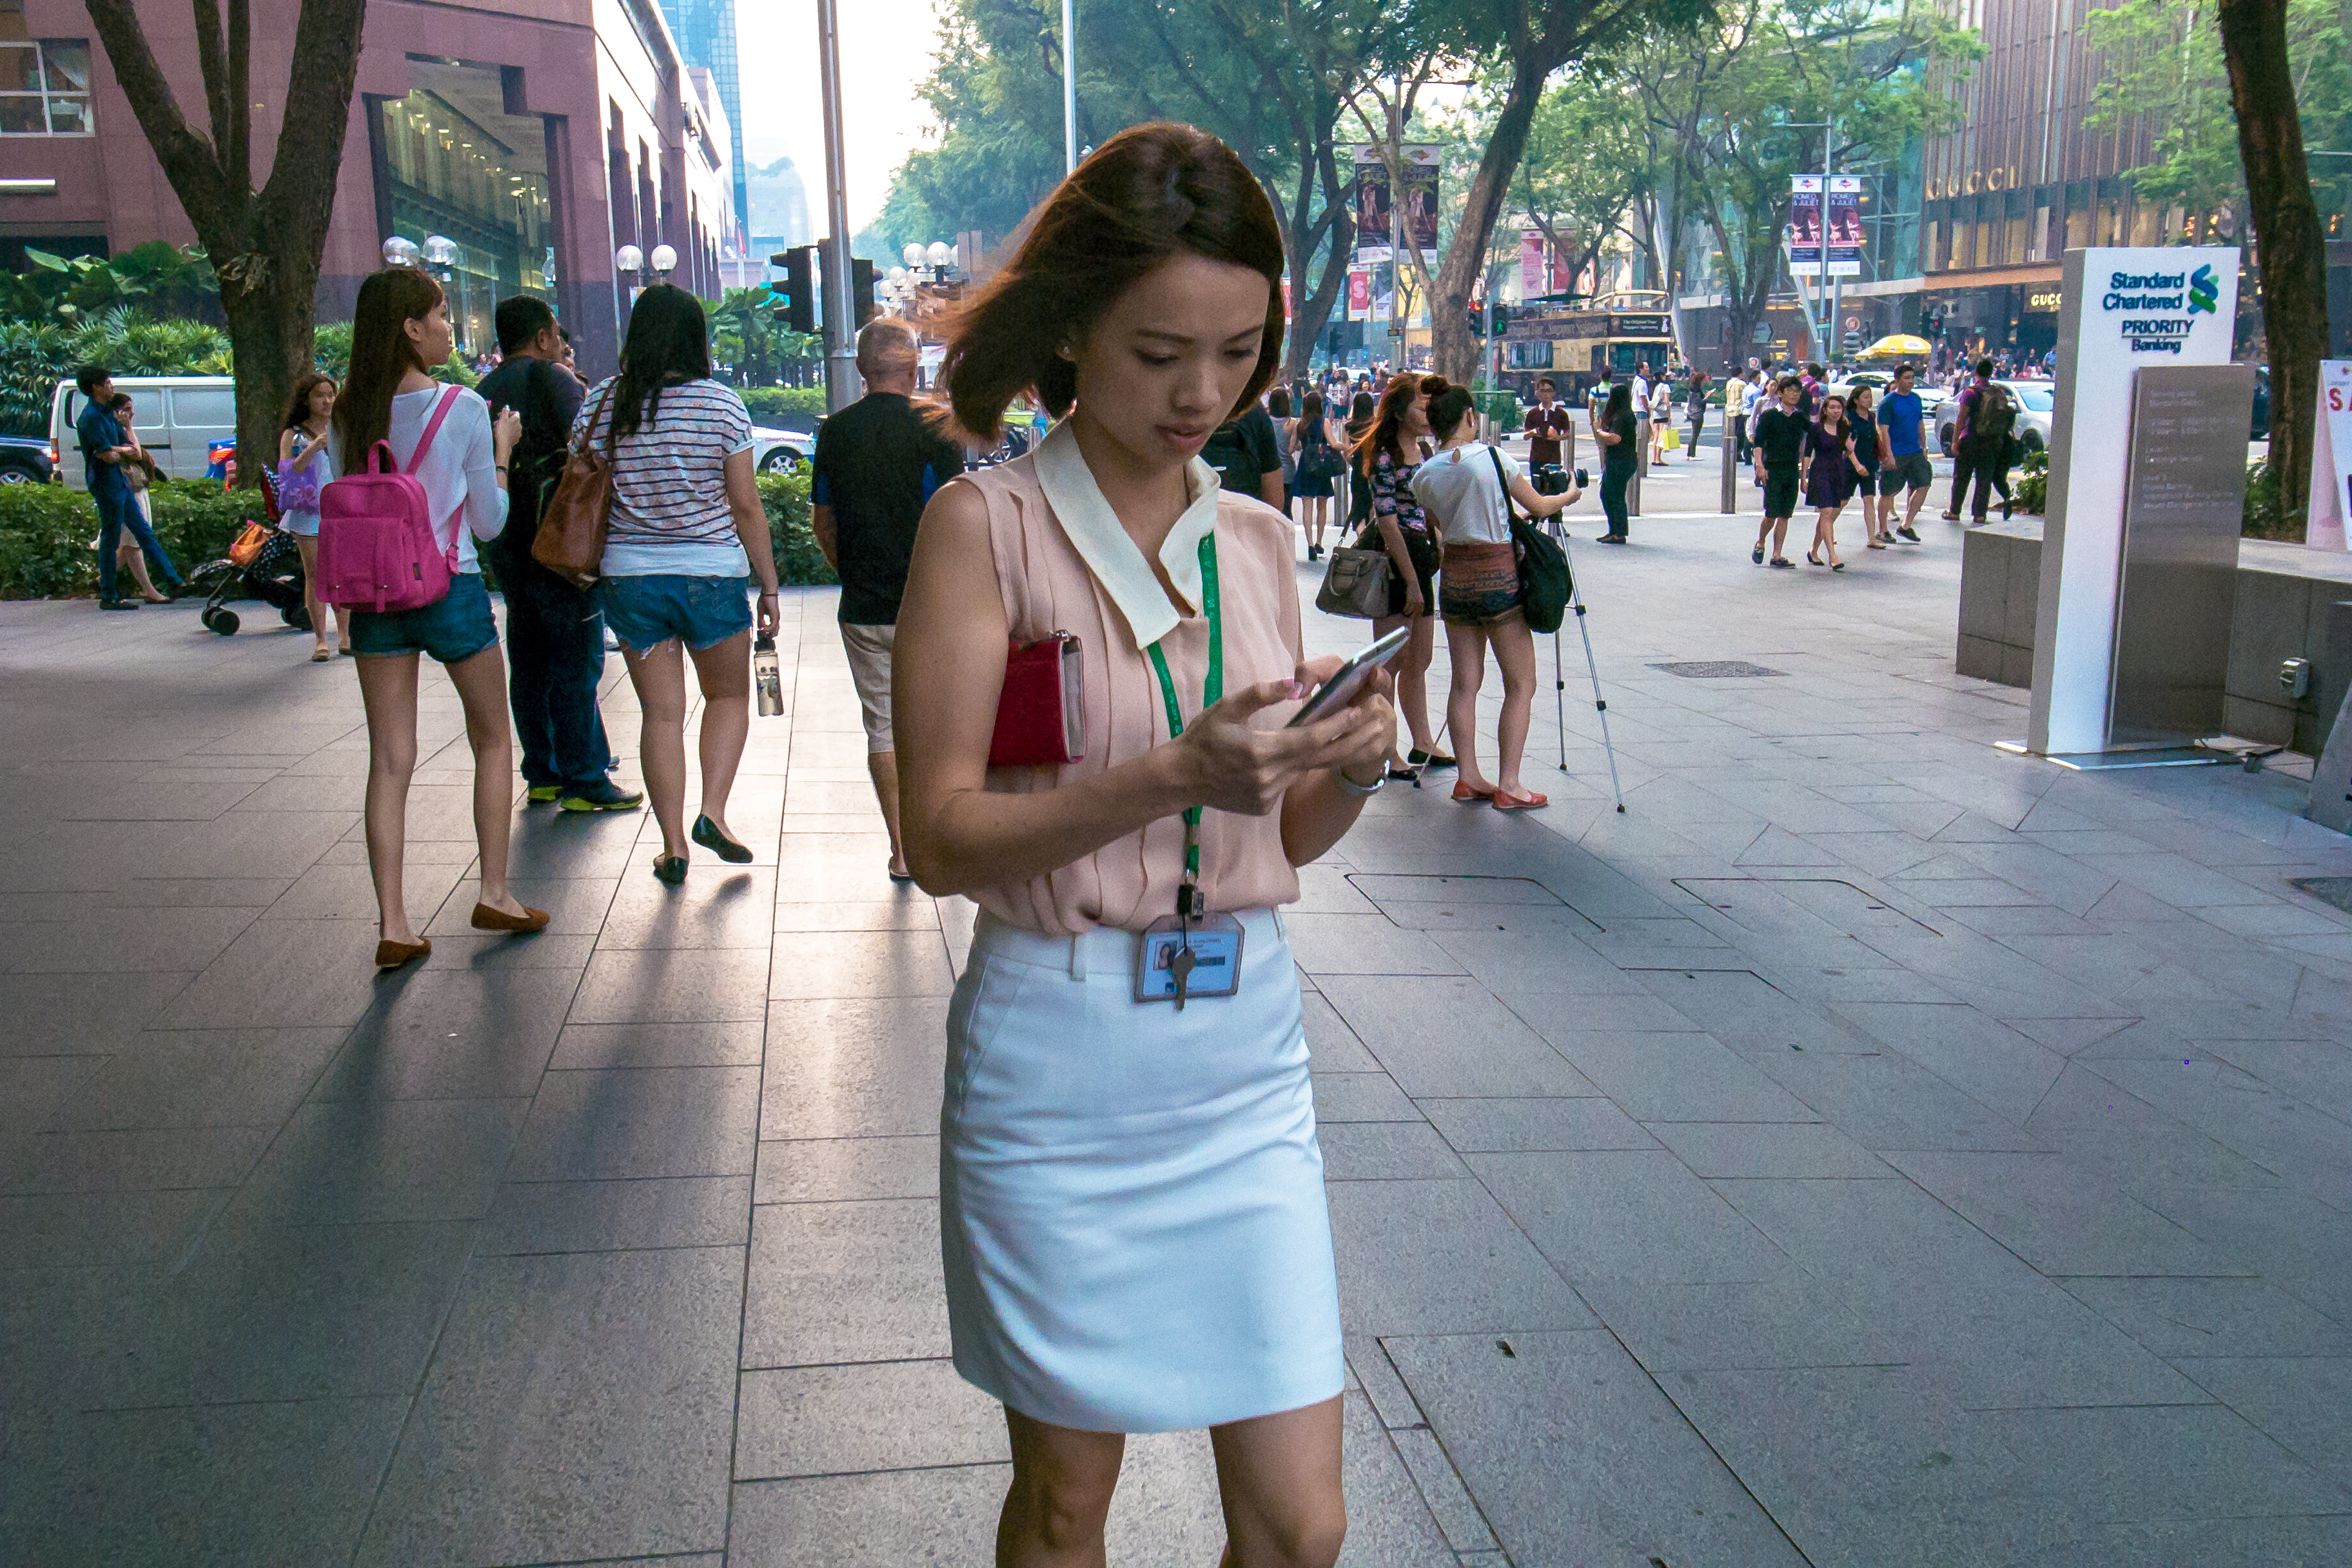 People Using Cellphones